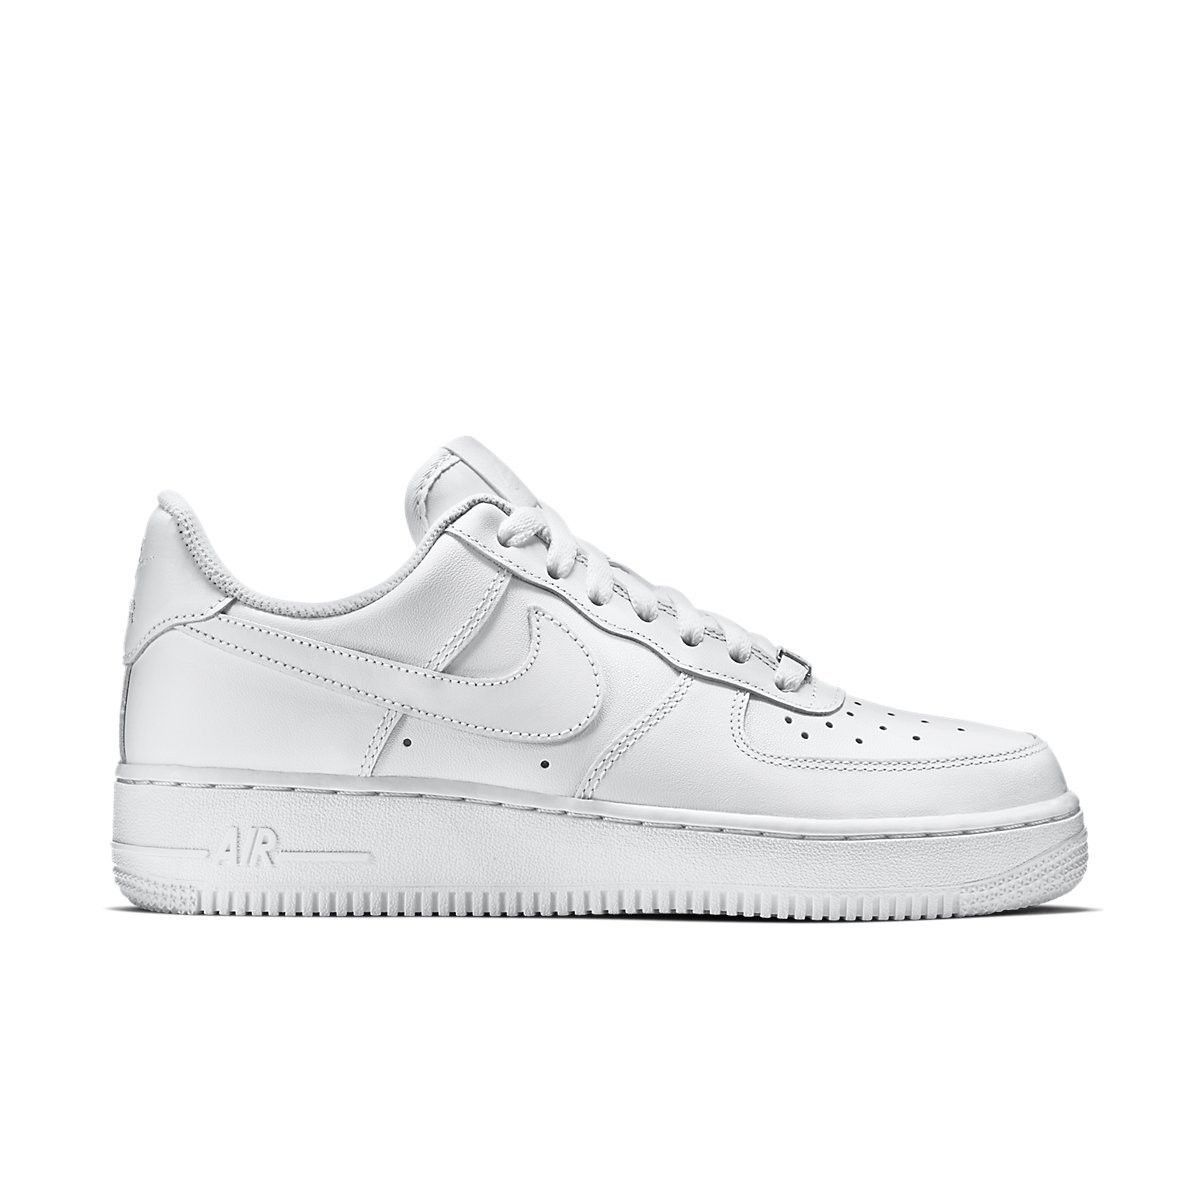 27b152184d7b Basket Nike Air Force 1 Low - 315115-112 - Taille   40